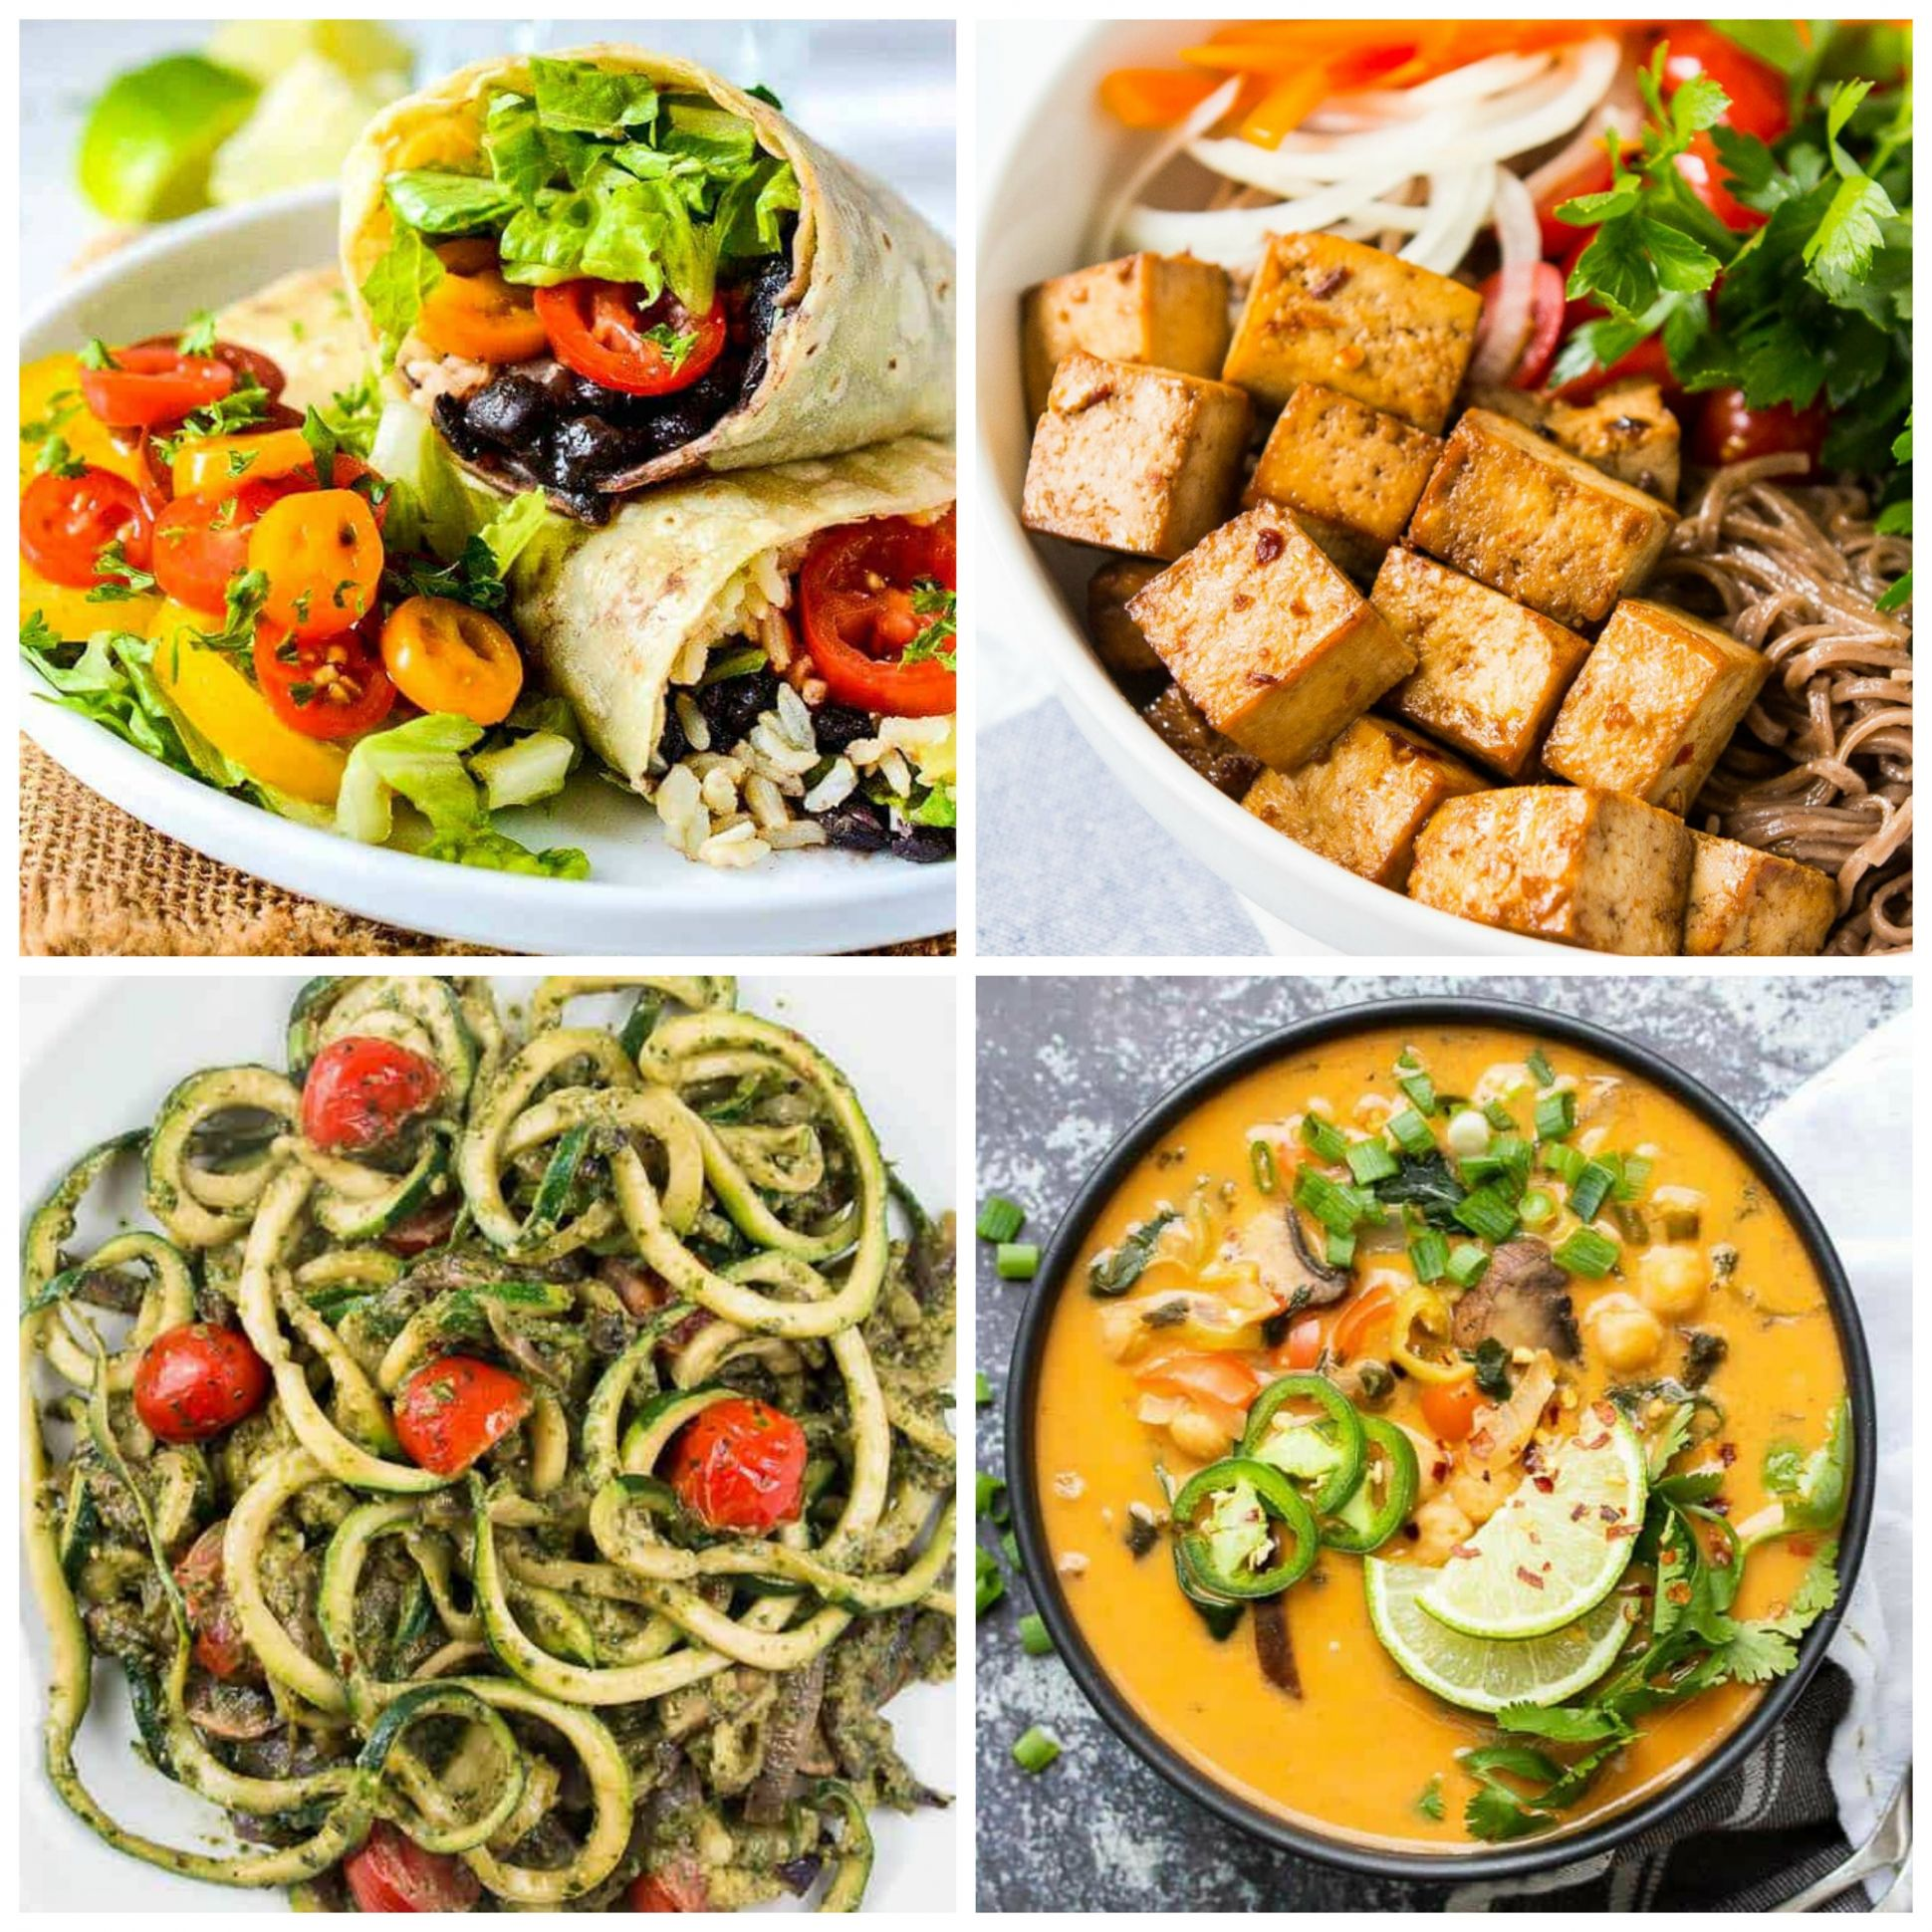 12 AMAZING Vegan Meals for Weight Loss (Gluten-Free & Low-Calorie) - Weight Loss Lunch Recipes Vegetarian